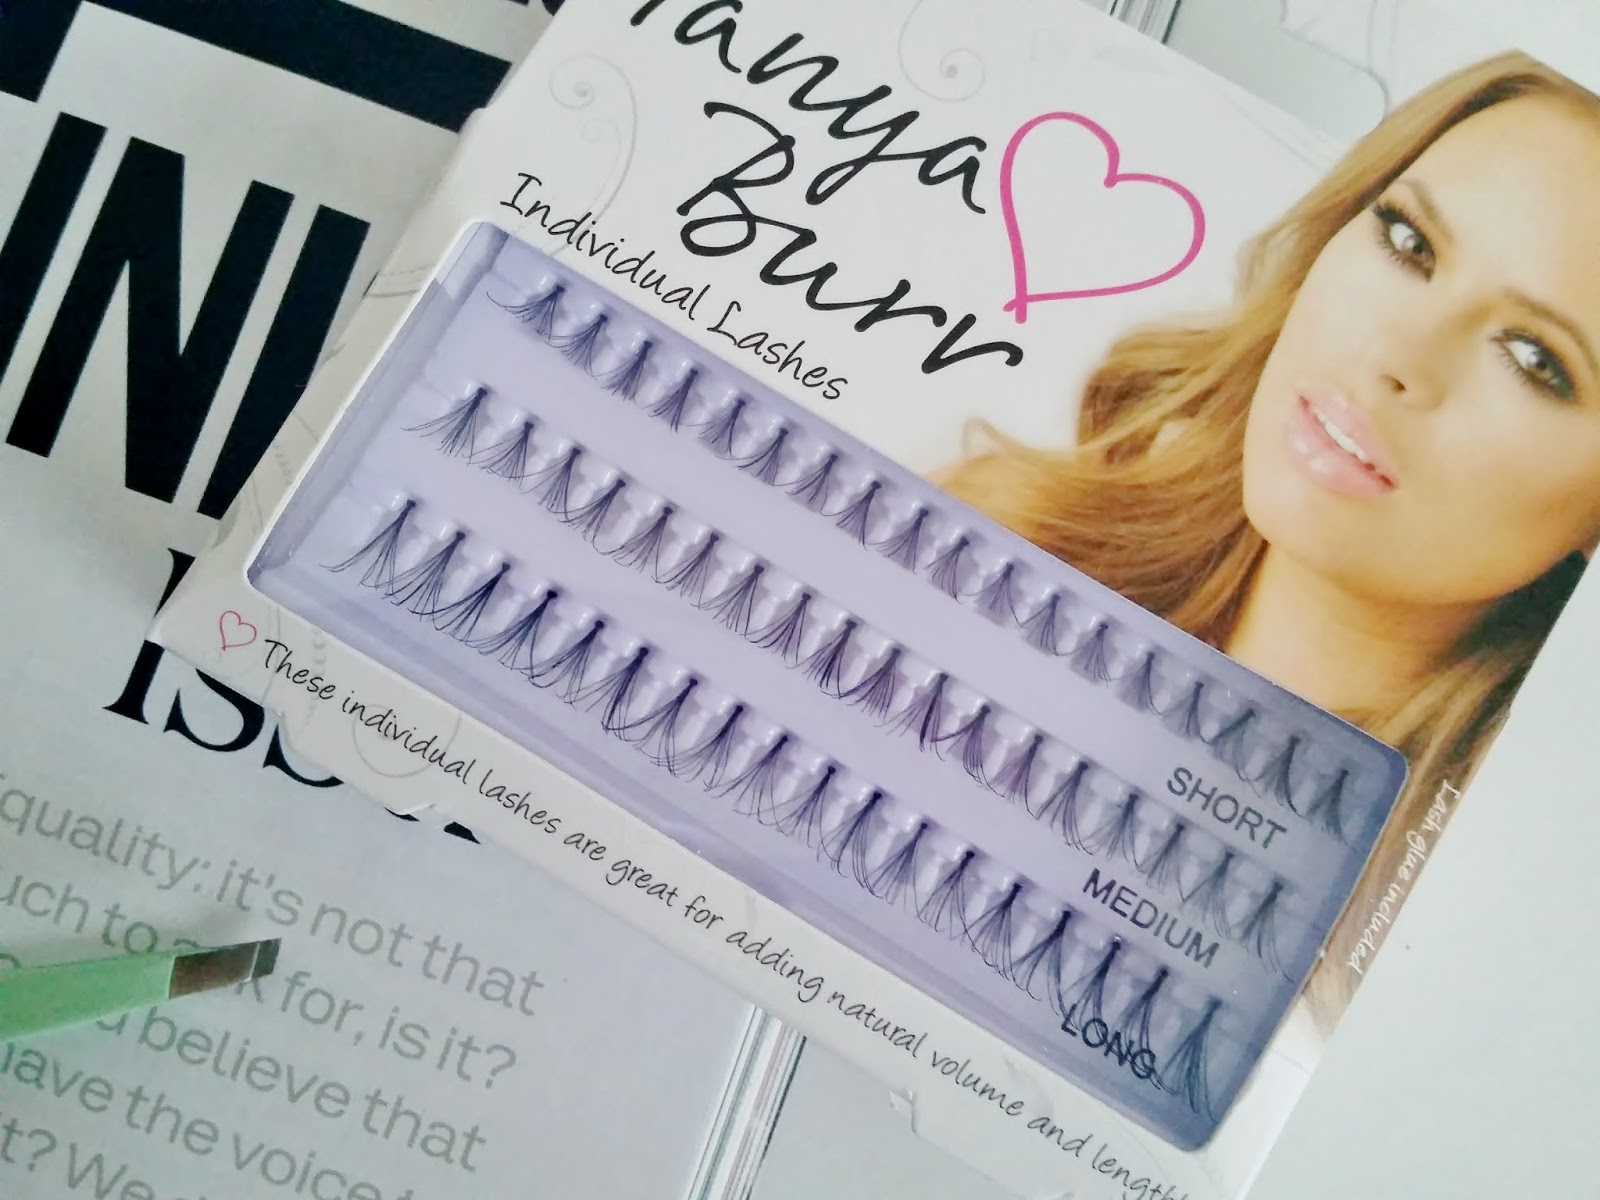 Individual False Lashes by Tanya Burr